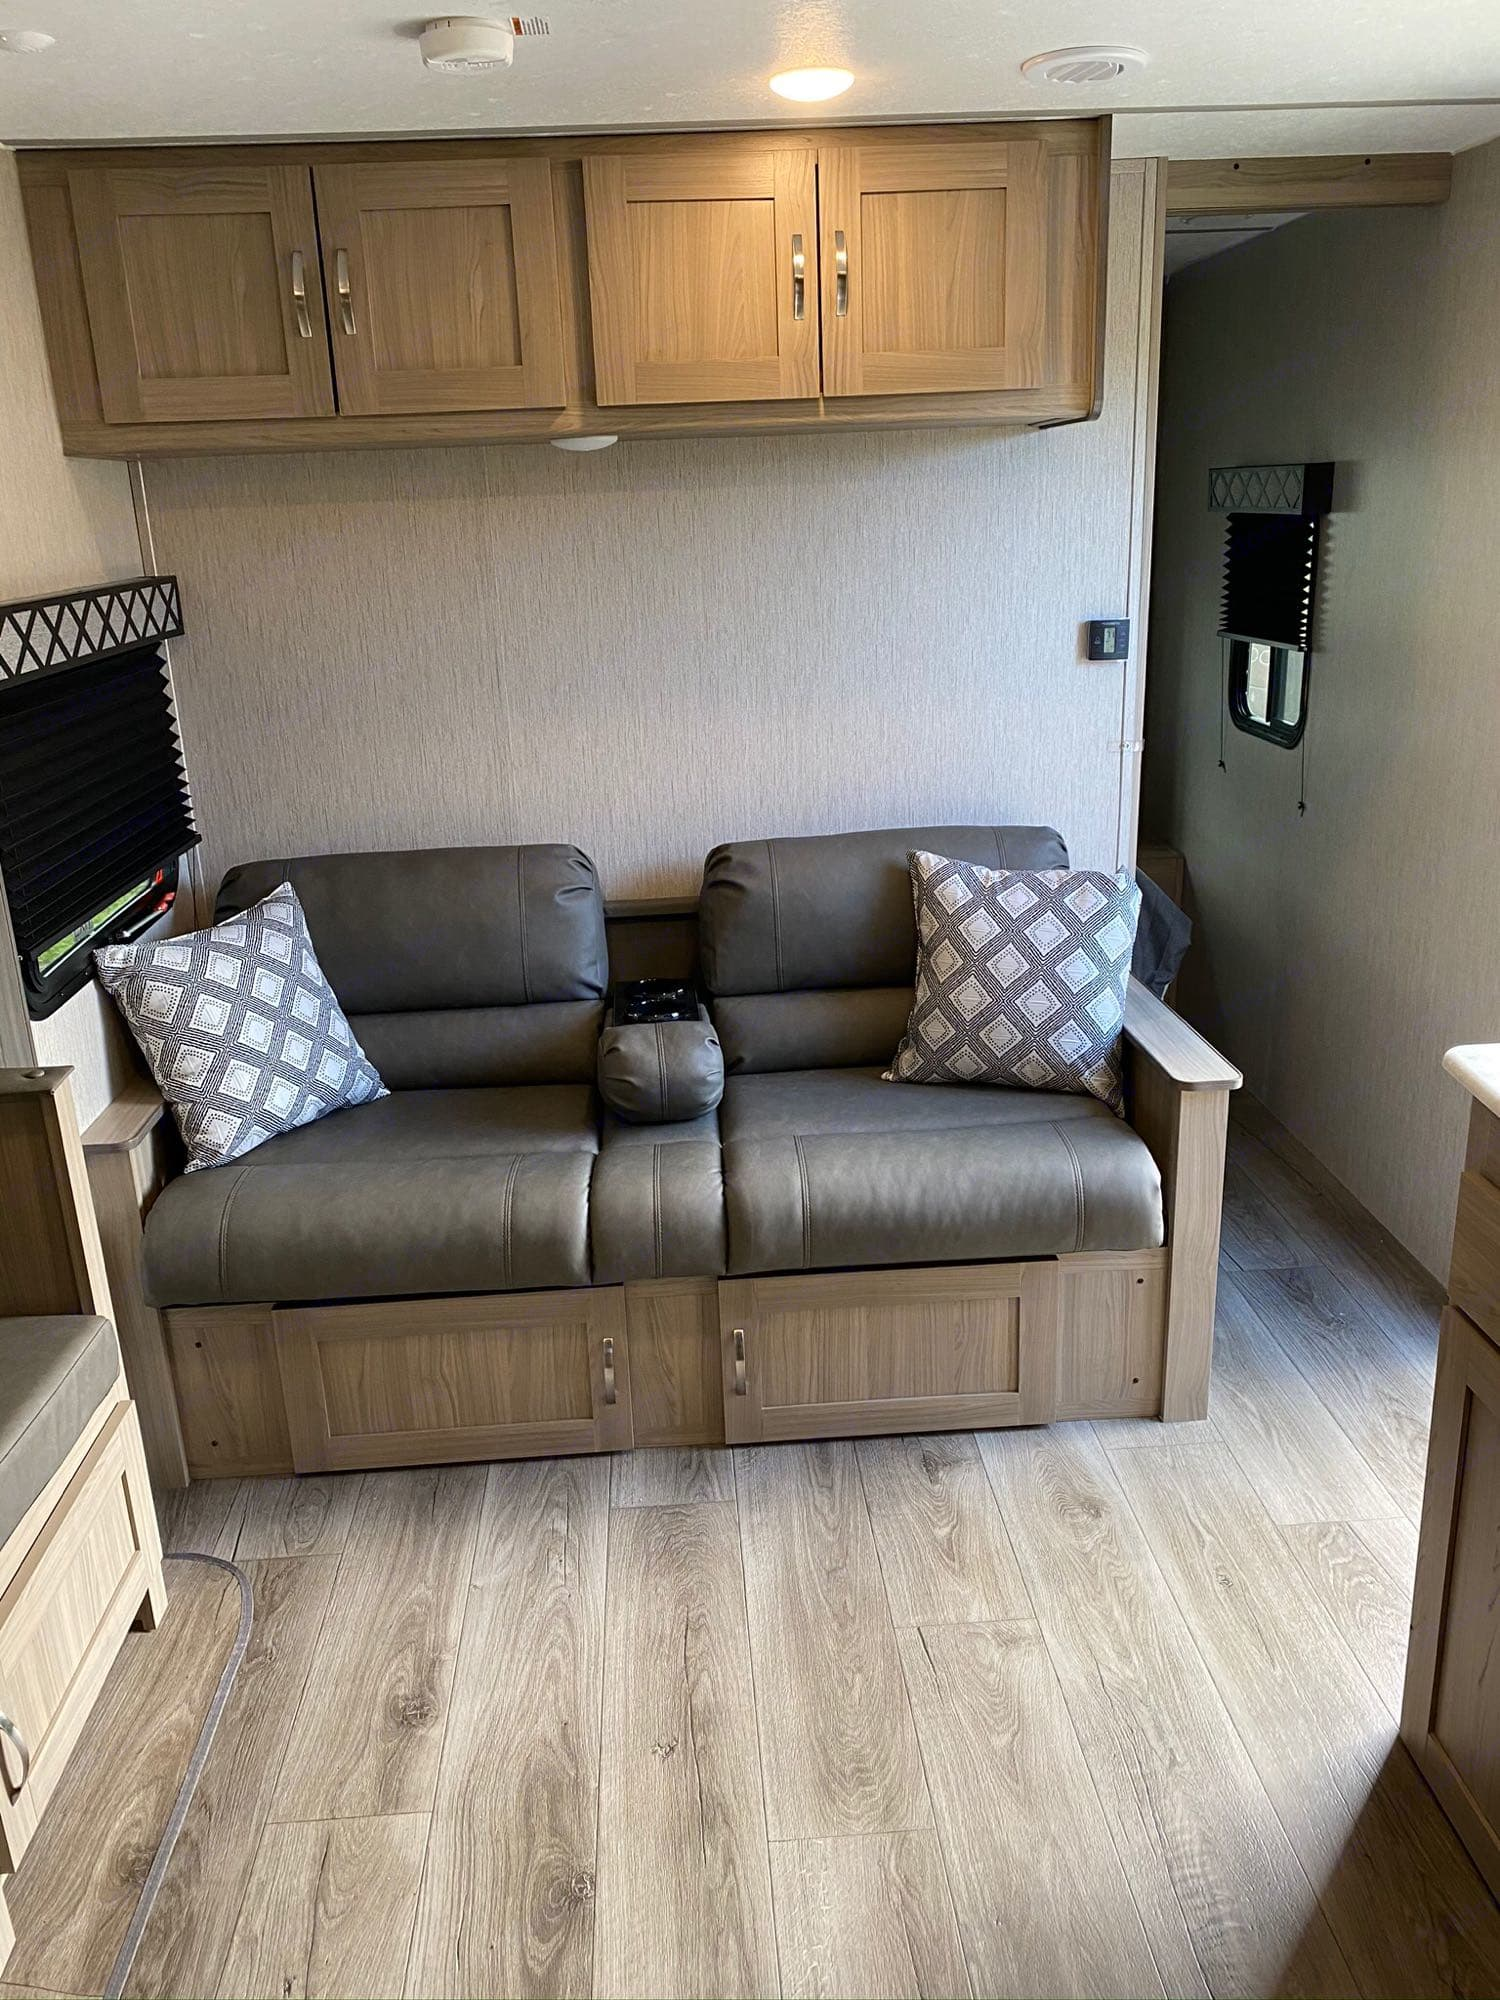 couch folds out to a bed. Coachmen Freedom Express 2021